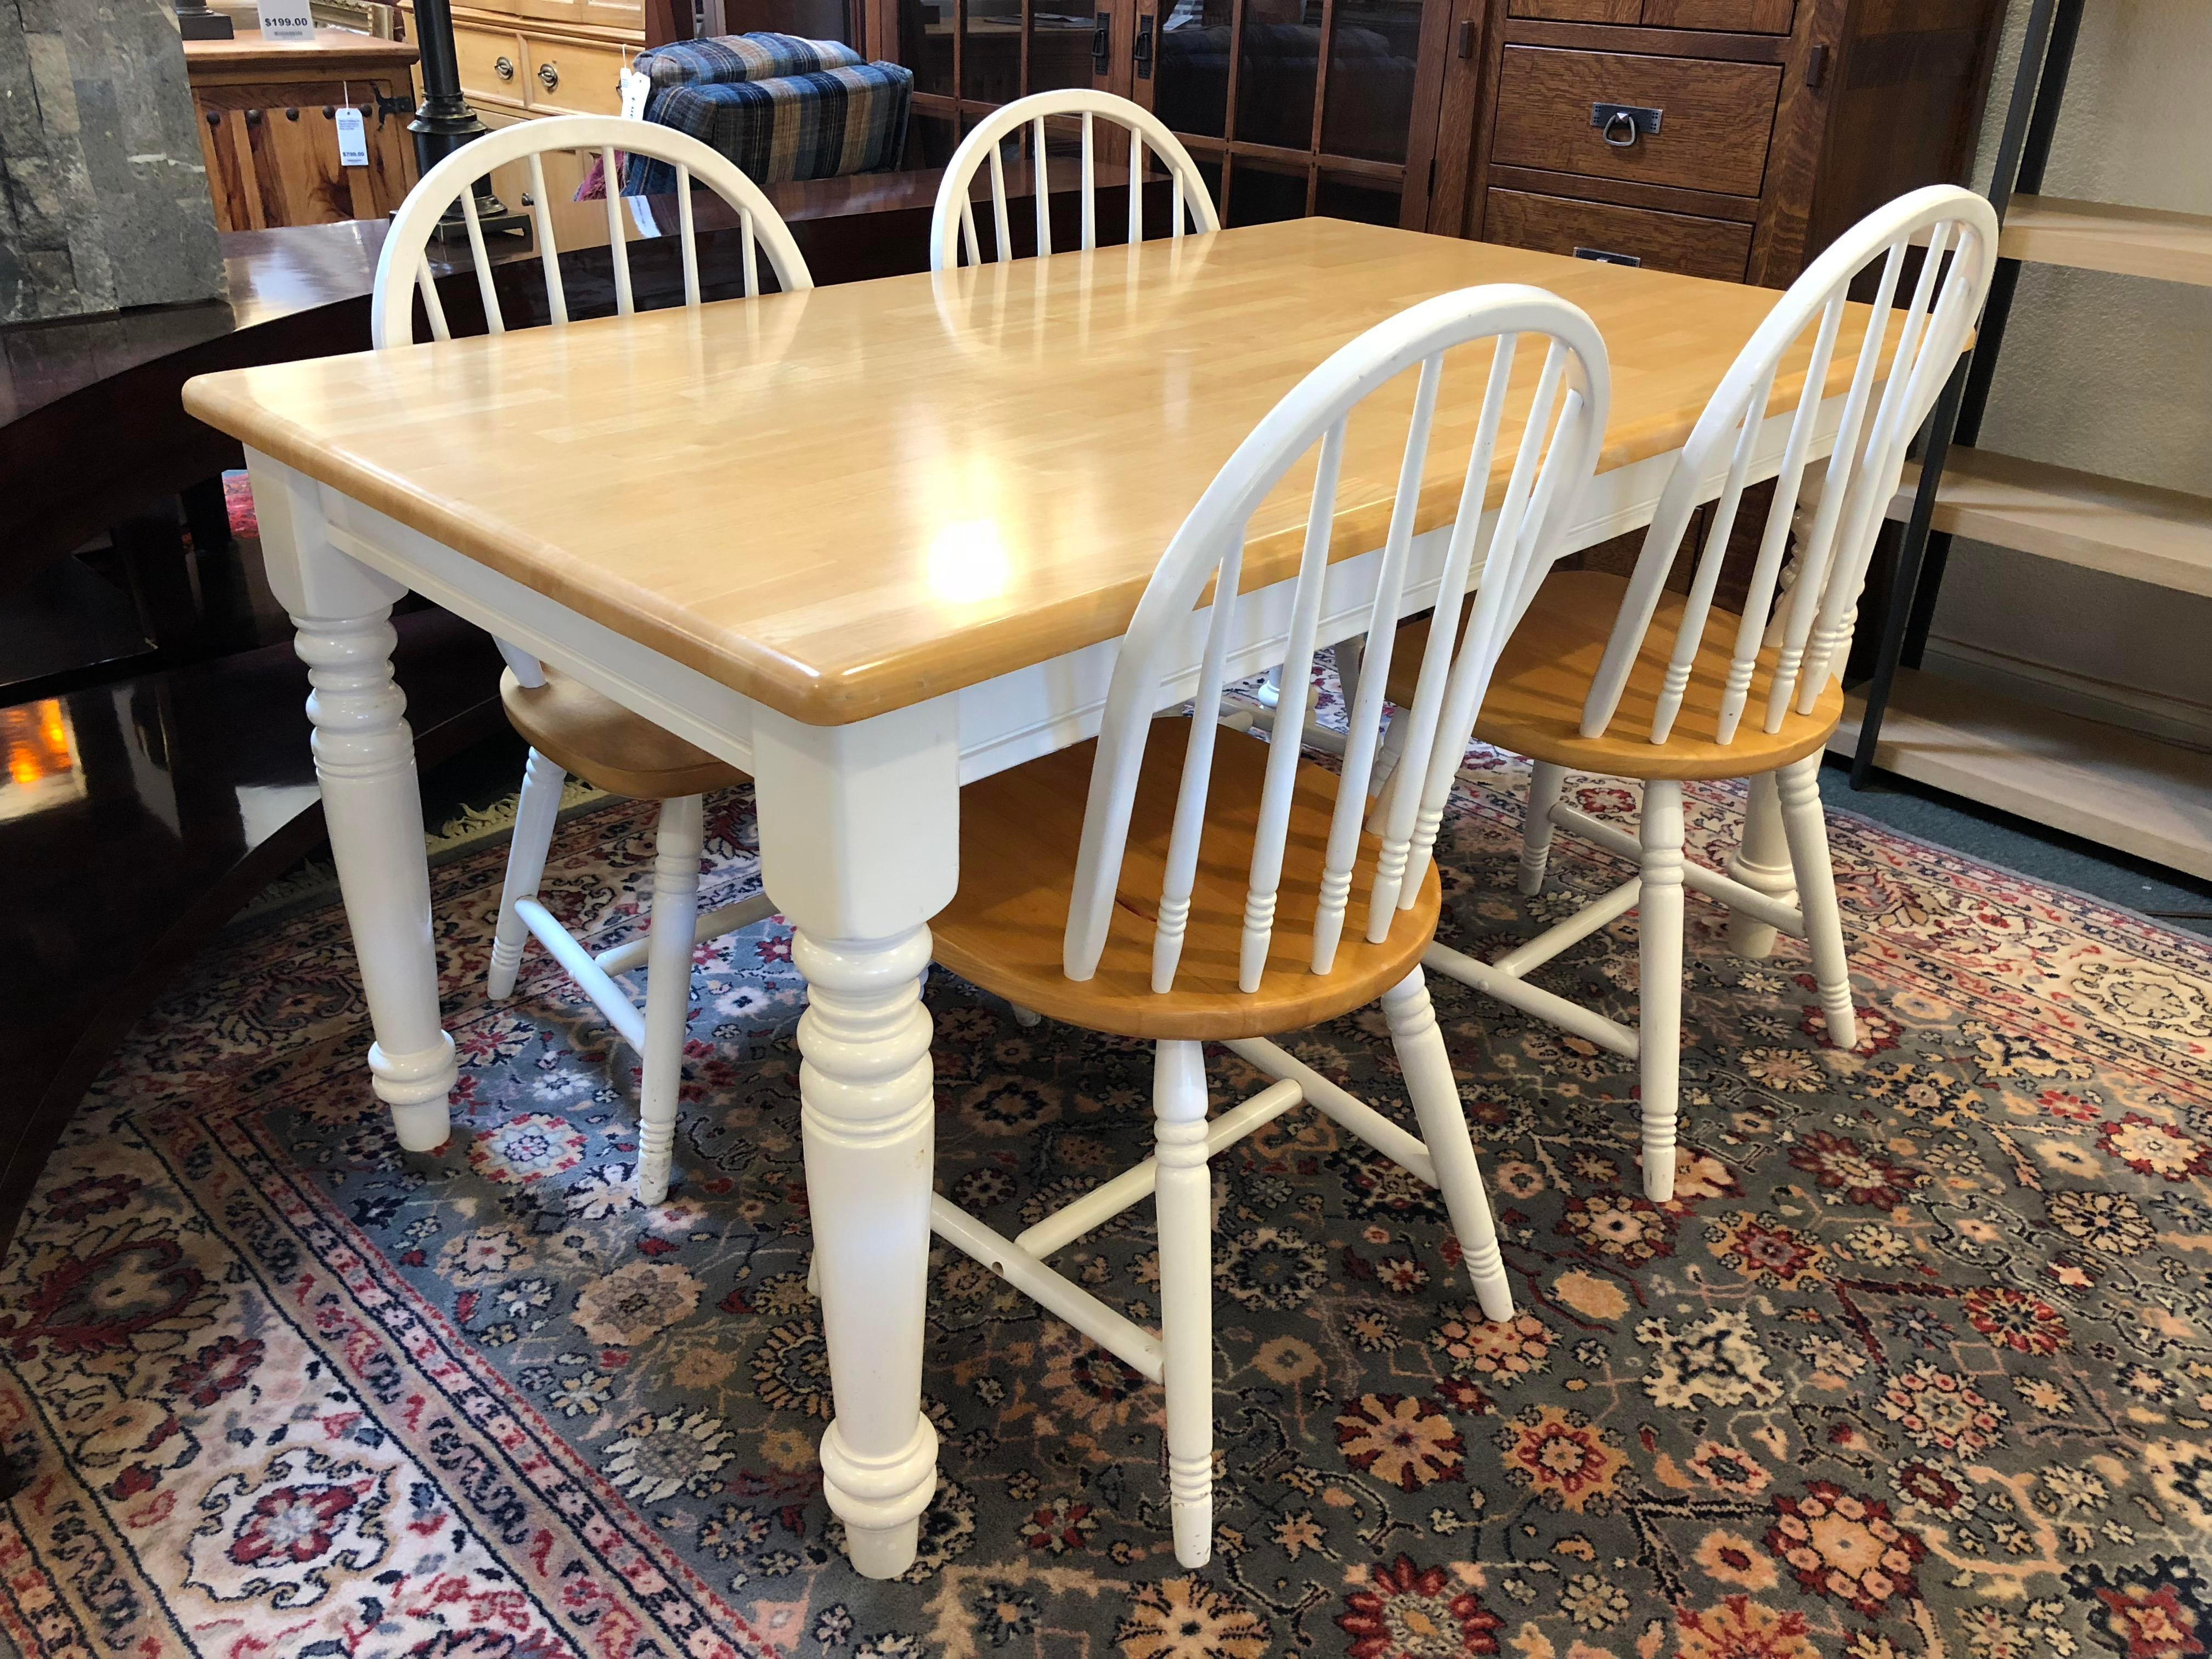 Delicieux This Is A Cottage Style Dining Set. Featuring Natural Matte Finish Wood  Surfaces Contrasted With